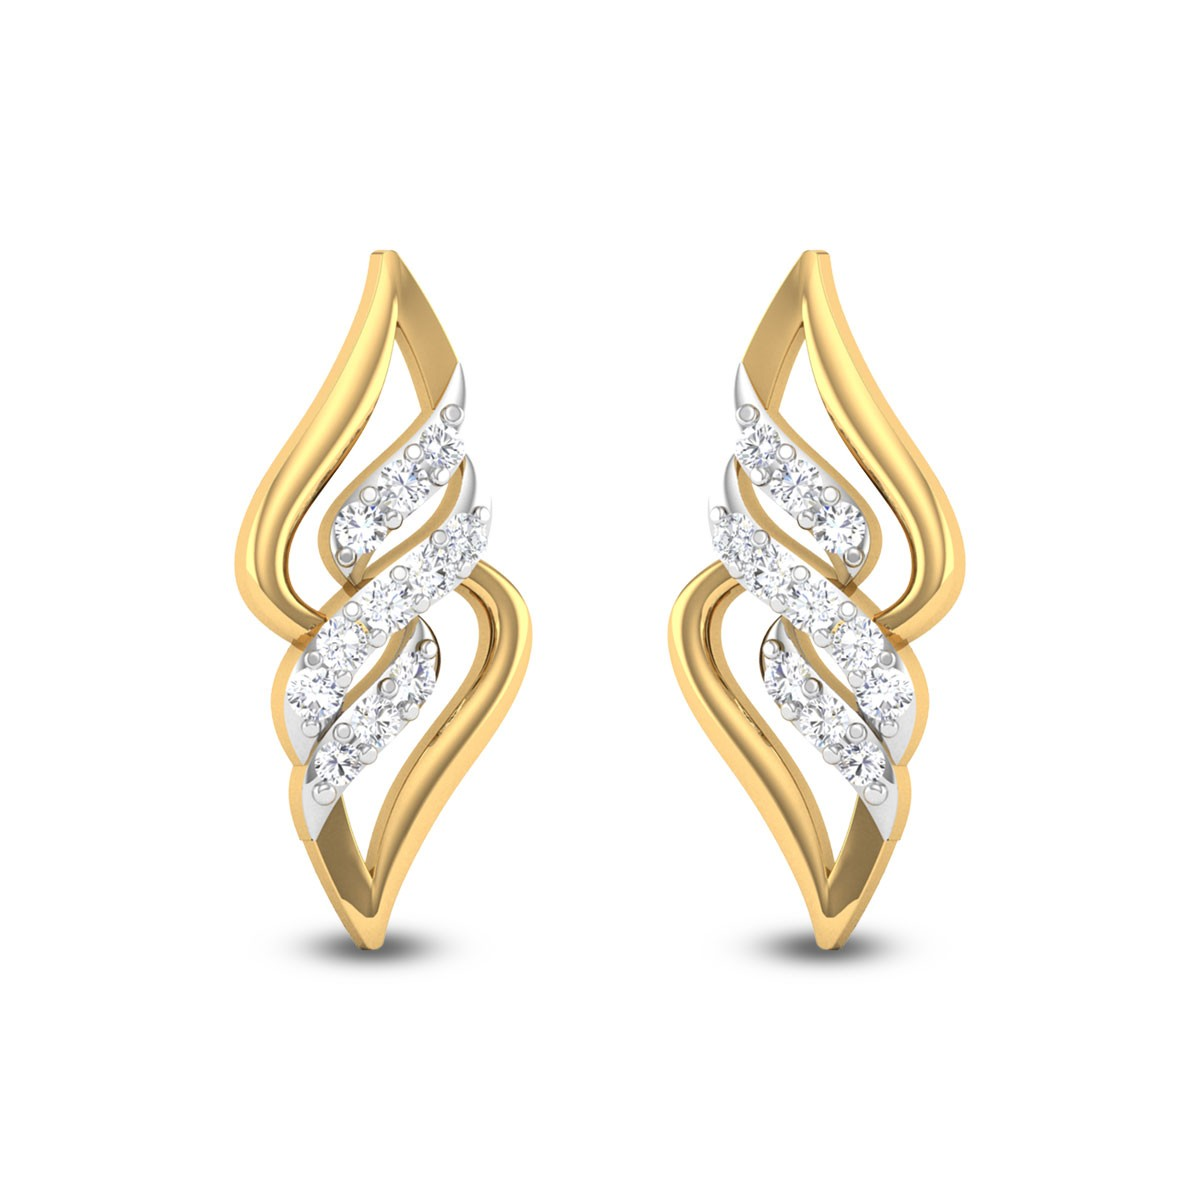 Reminiscence Diamond Earrings